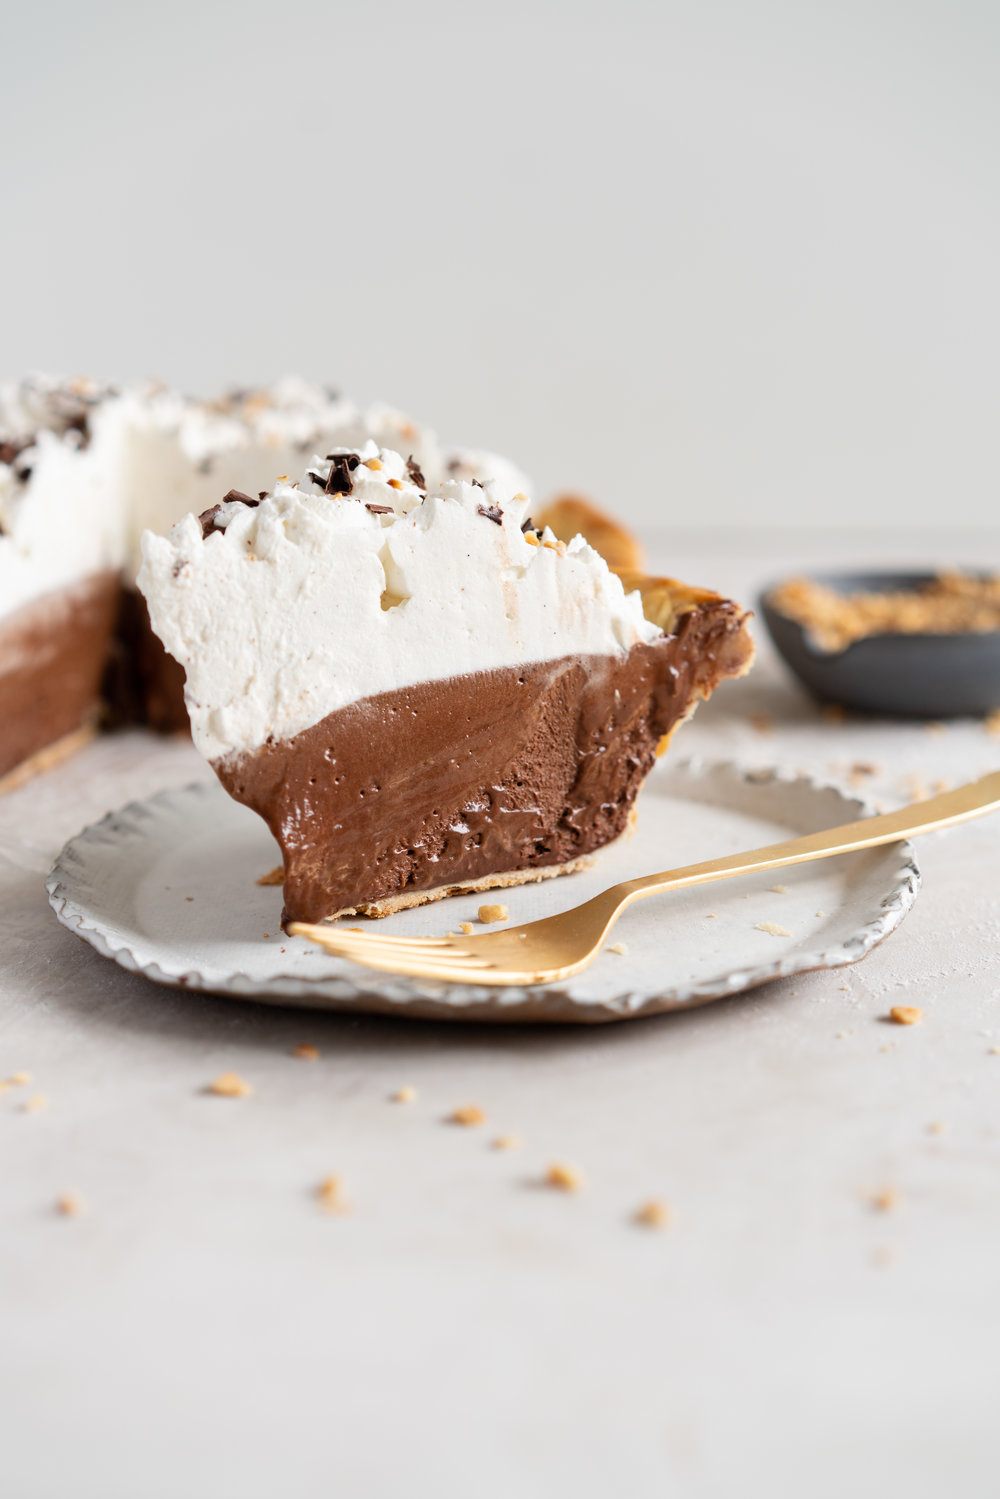 Nutella French Silk Pie - Nutella and dark chocolate mousse pie. An egg free variation on the very popular French Silk Pie, this pie is light and airy, while being rich in flavour. Topped with silky whipped cream to finish, it makes the perfect, easy dessert. The filling is no bake, and it will be a huge crowd pleaser with anyone who loves chocolate. #frenchsilkpie #eggfree #chocolatepie